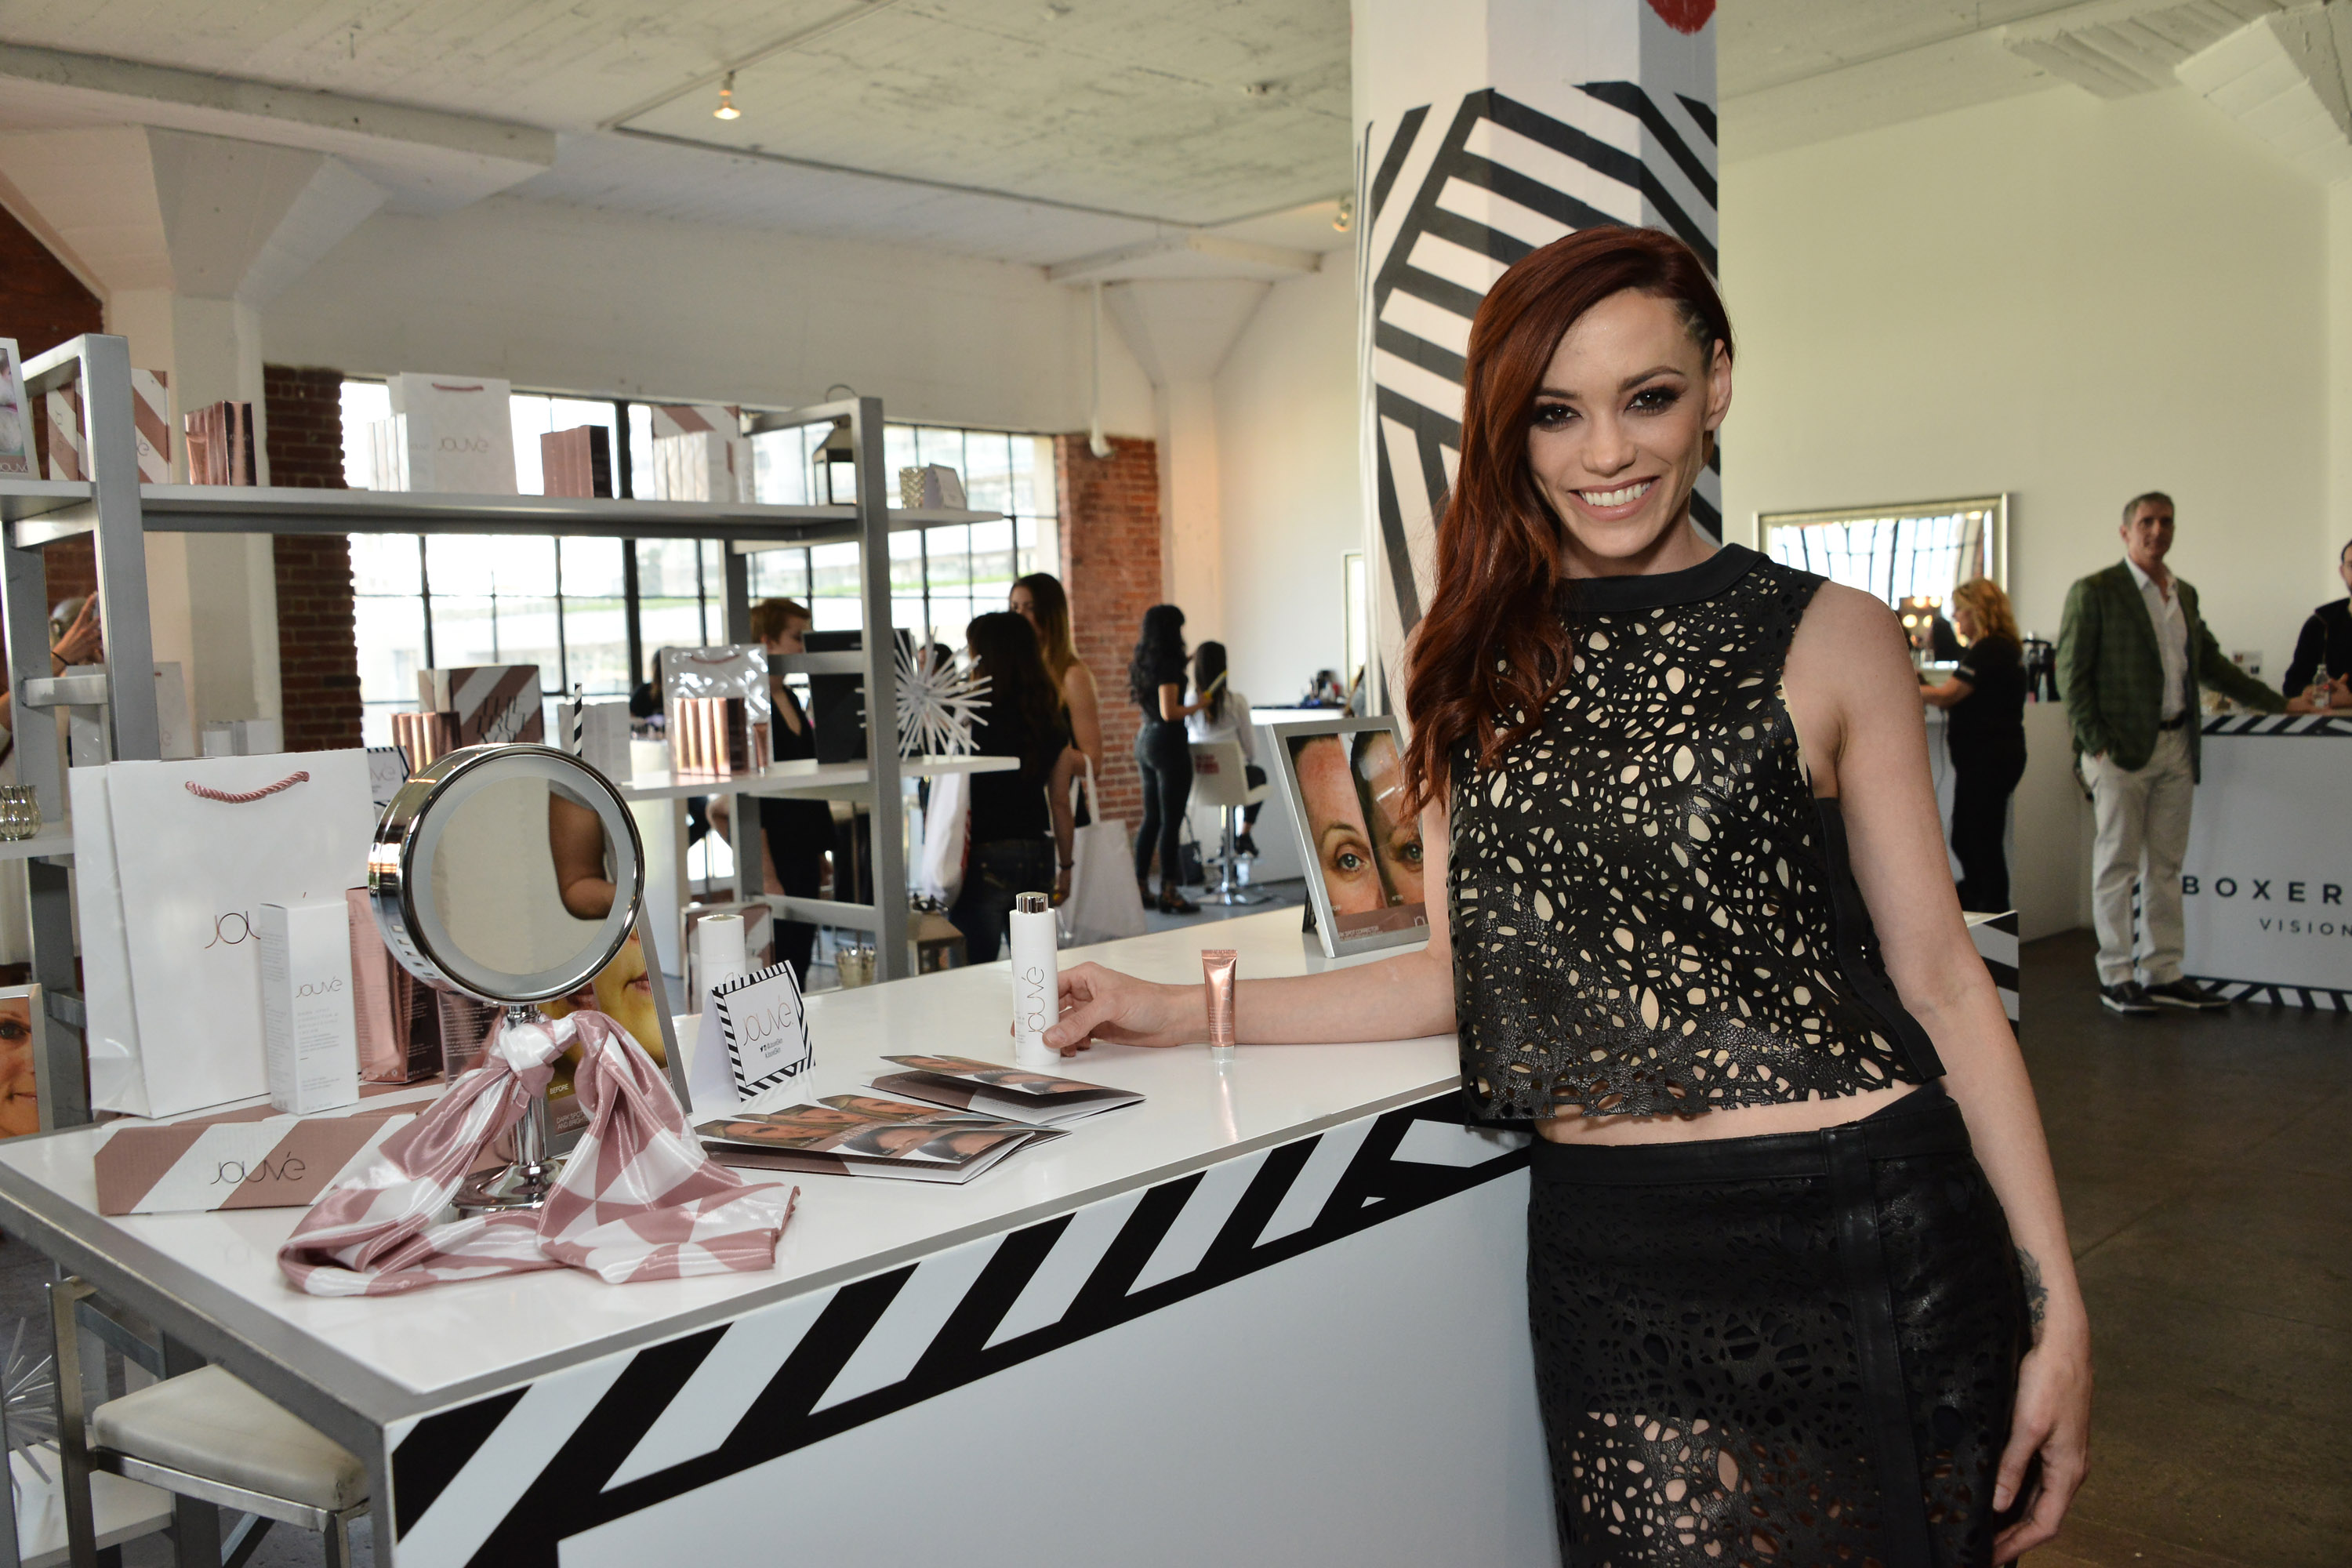 The Colgate Optic White Beauty Bar, The Cool Event To Be At